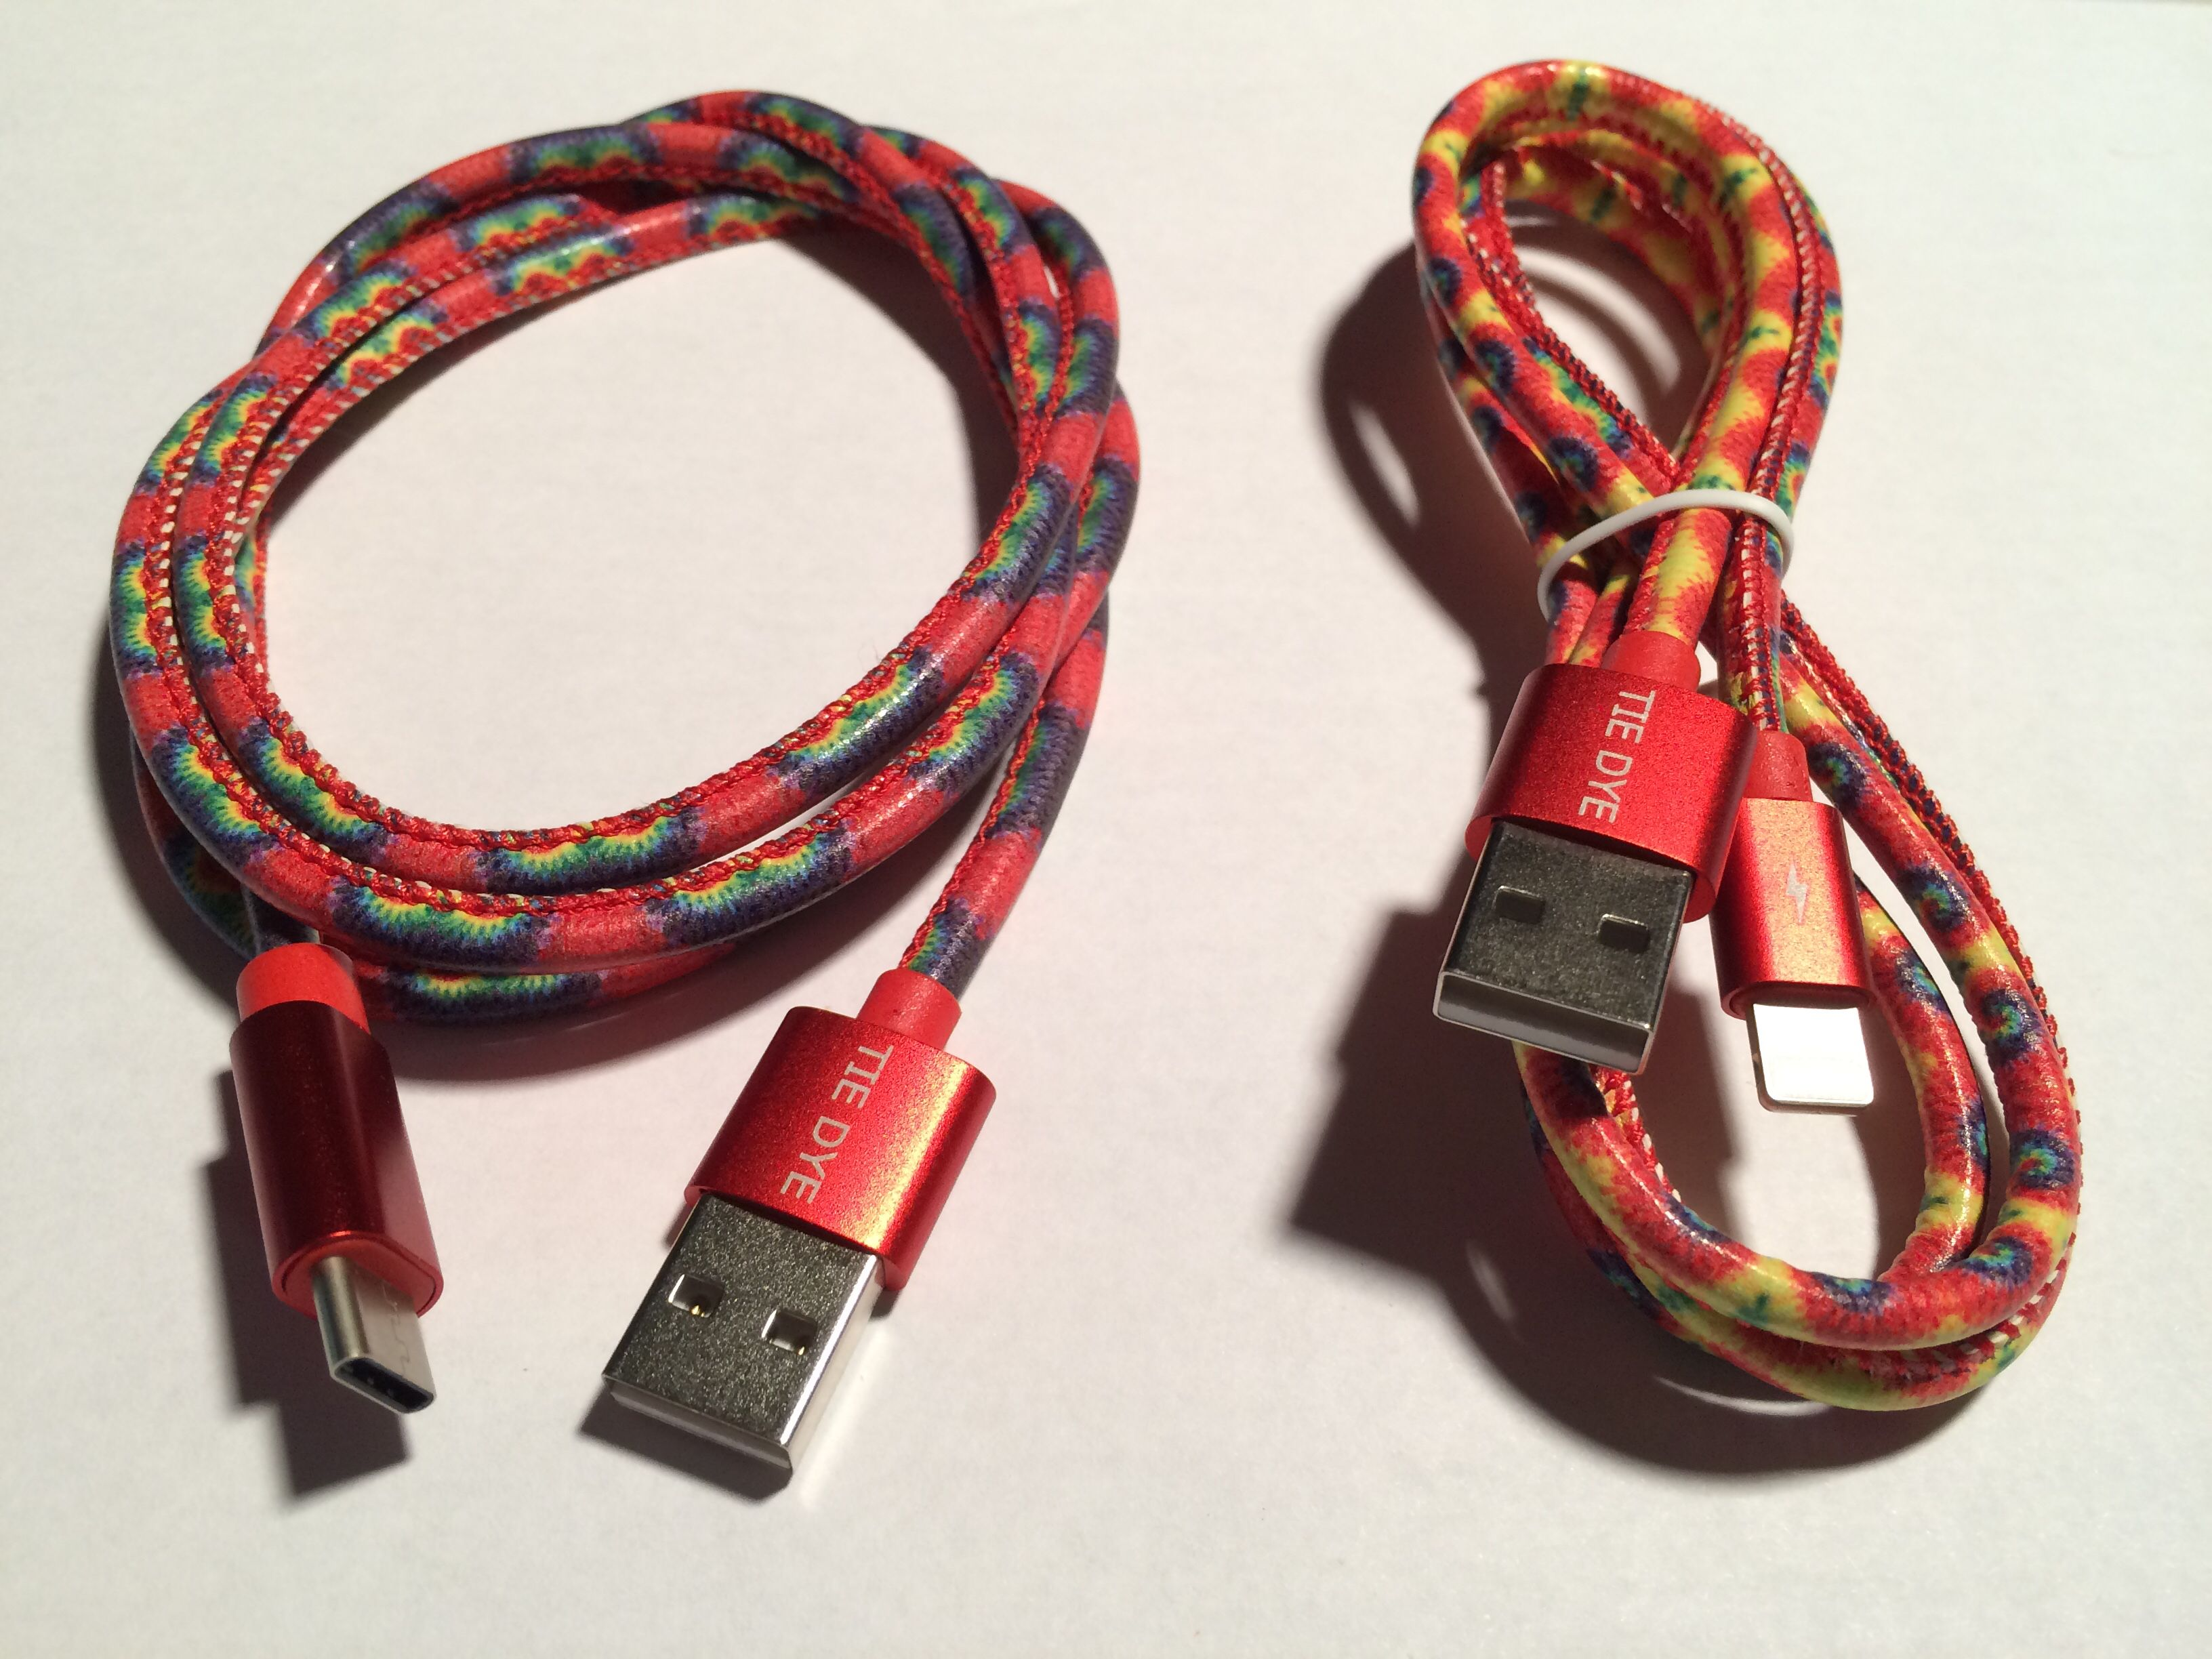 Vibrant Usb Tie Dye Charging Data Sync Cable Apple Android Compatible Tie Dye Designs Colored Cables Leather Bracelet